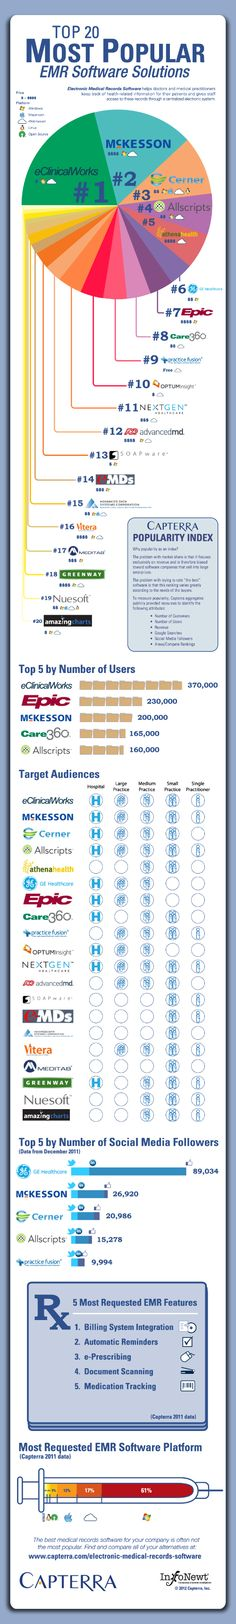 Infographic about Electronic Medical Record software solutions.